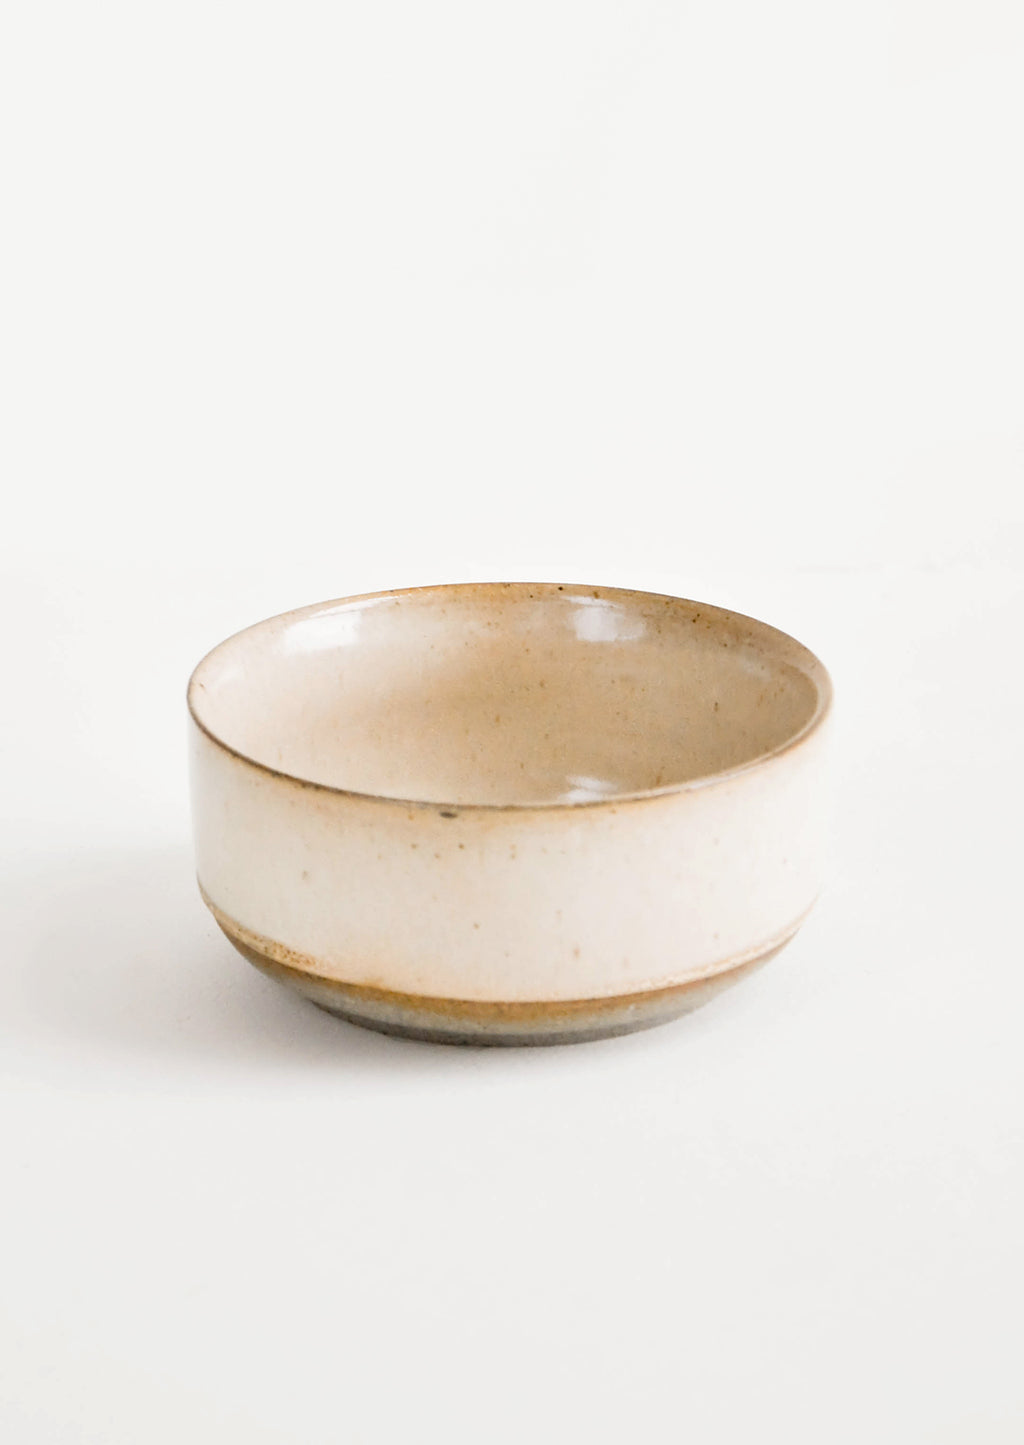 3: Round ceramic bowl in beige glaze pictured alone for use separate of tray- LEIF